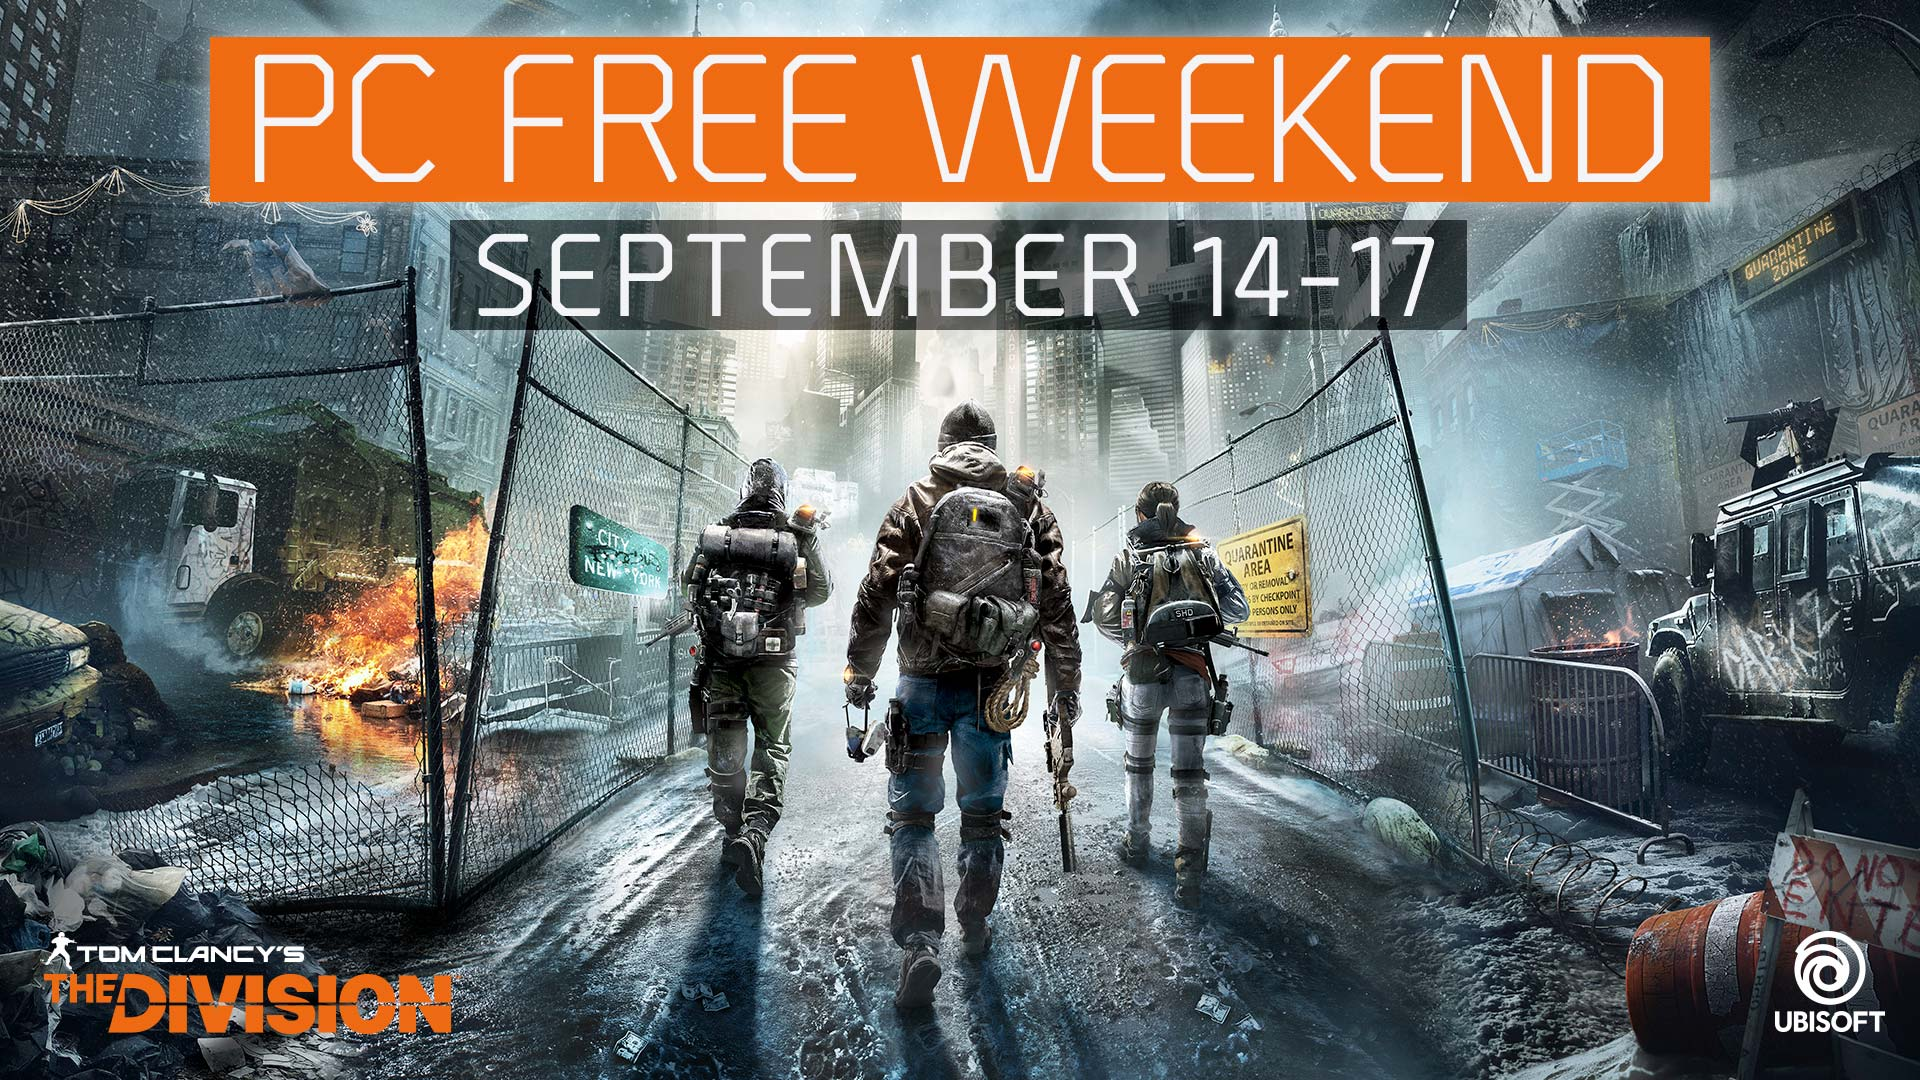 12-09-2017 [News] Free weekend PC